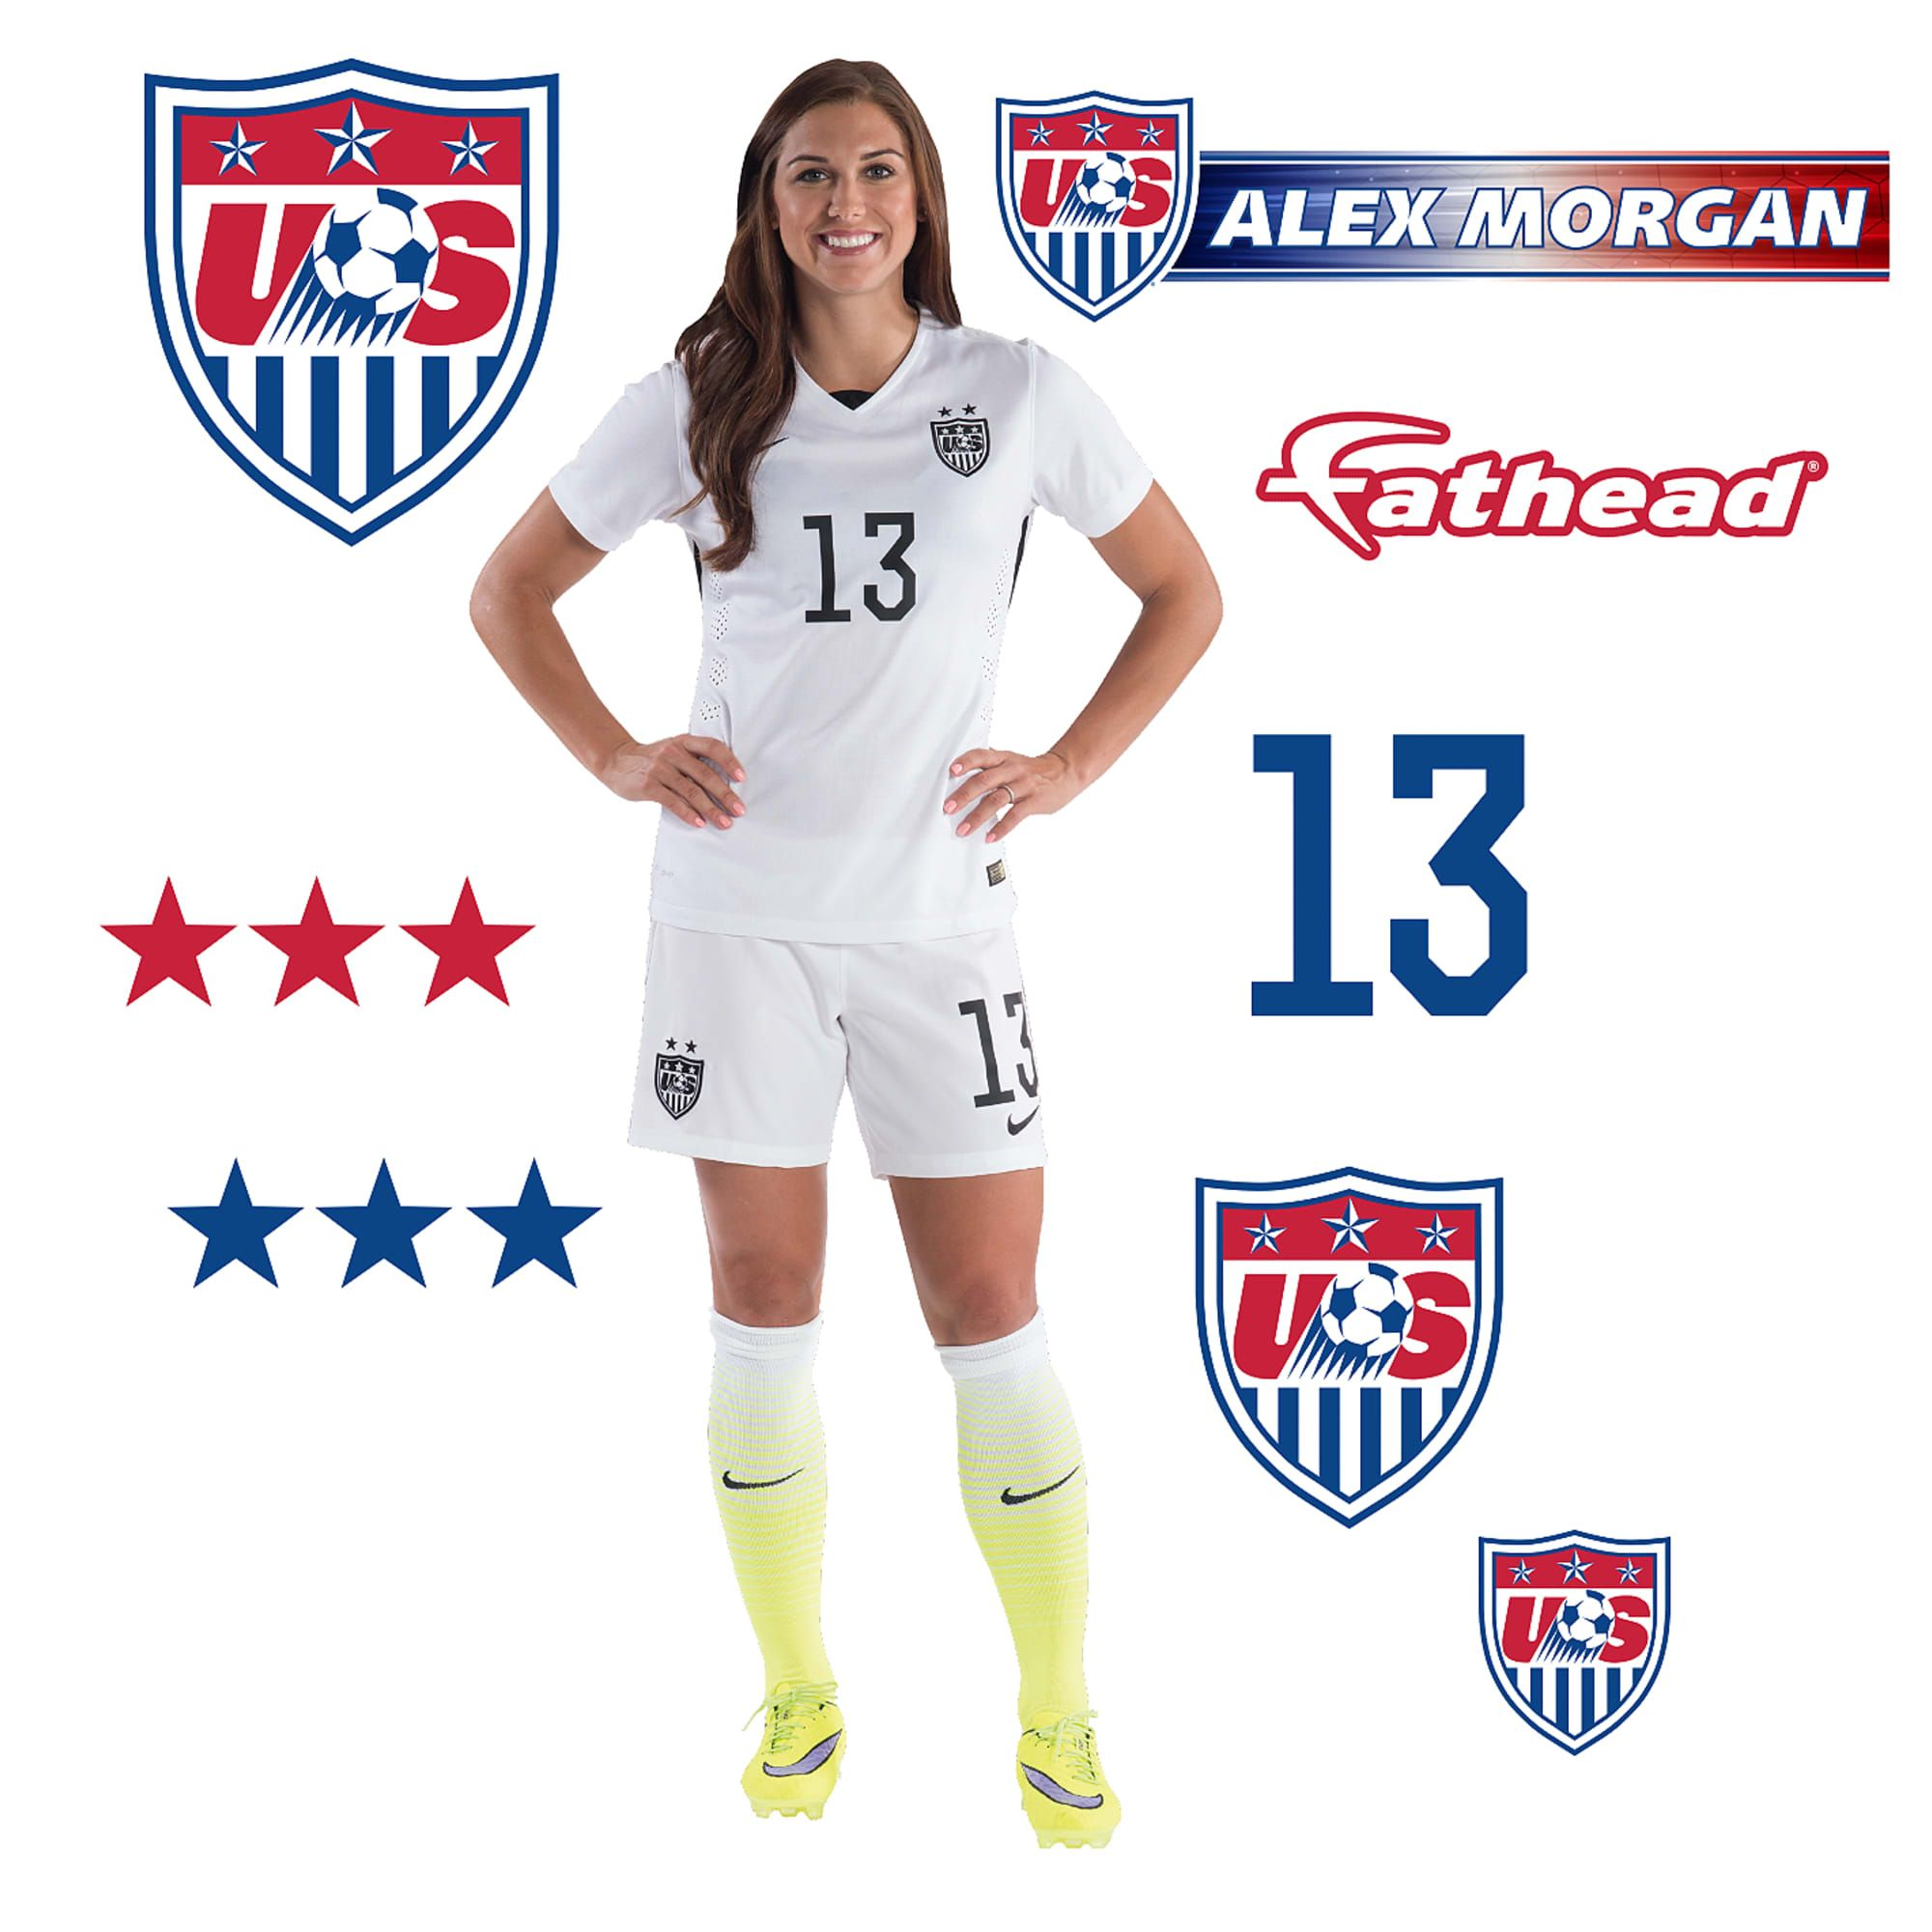 alex morgan x large officially licensed removable wall on wall logo decal id=39716